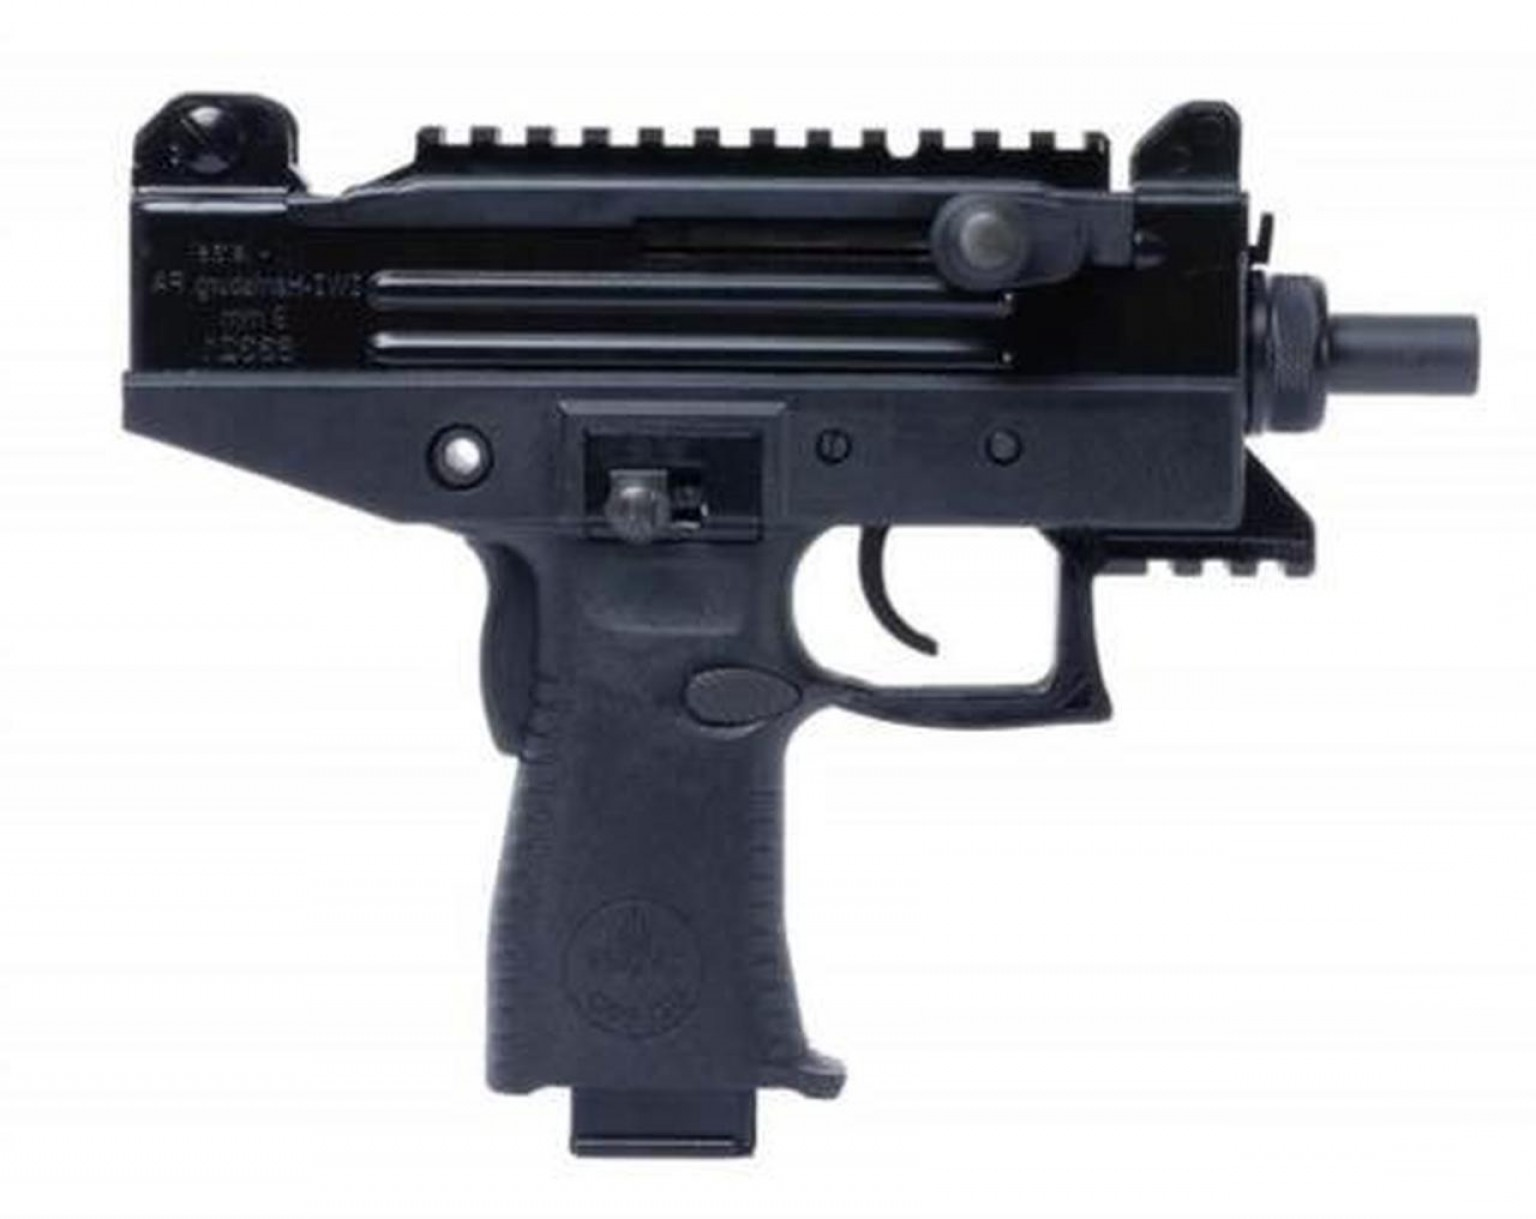 Vector Arms Uzi Manual: Iwi Uzi Pro Pistol Mm Para Barrel Rd Mag Upps